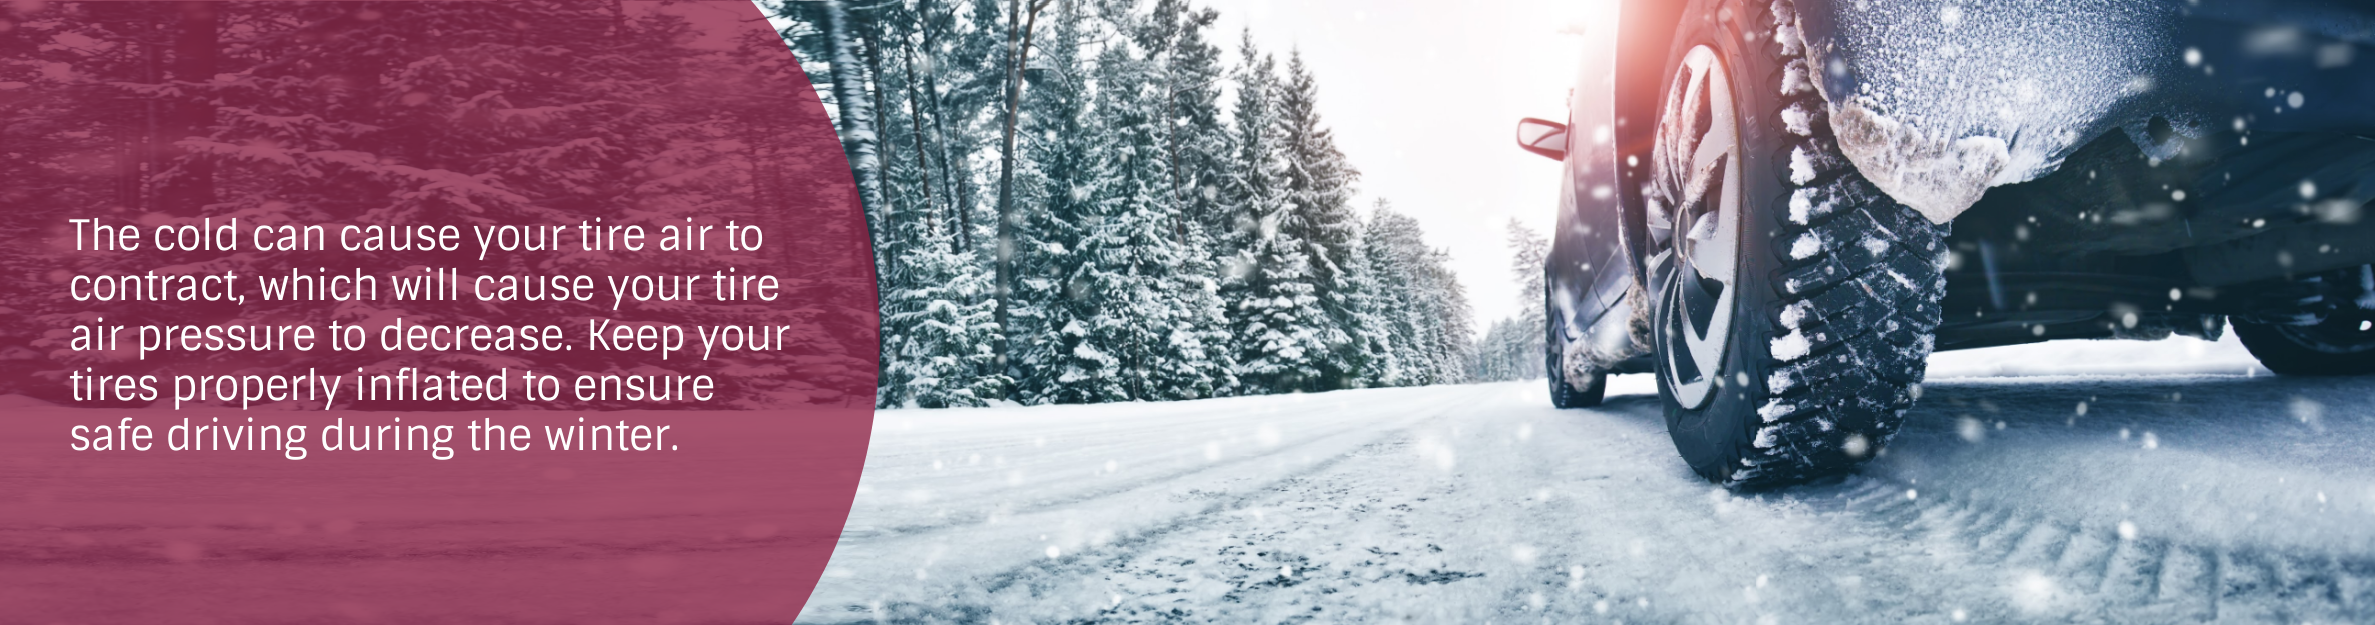 Photo: Car on a snowy road Text: The cold can cause your tire air to contract, which will cause your tire air pressure to decrease. Keep your tires properly inflated to ensure safe driving during the winter.